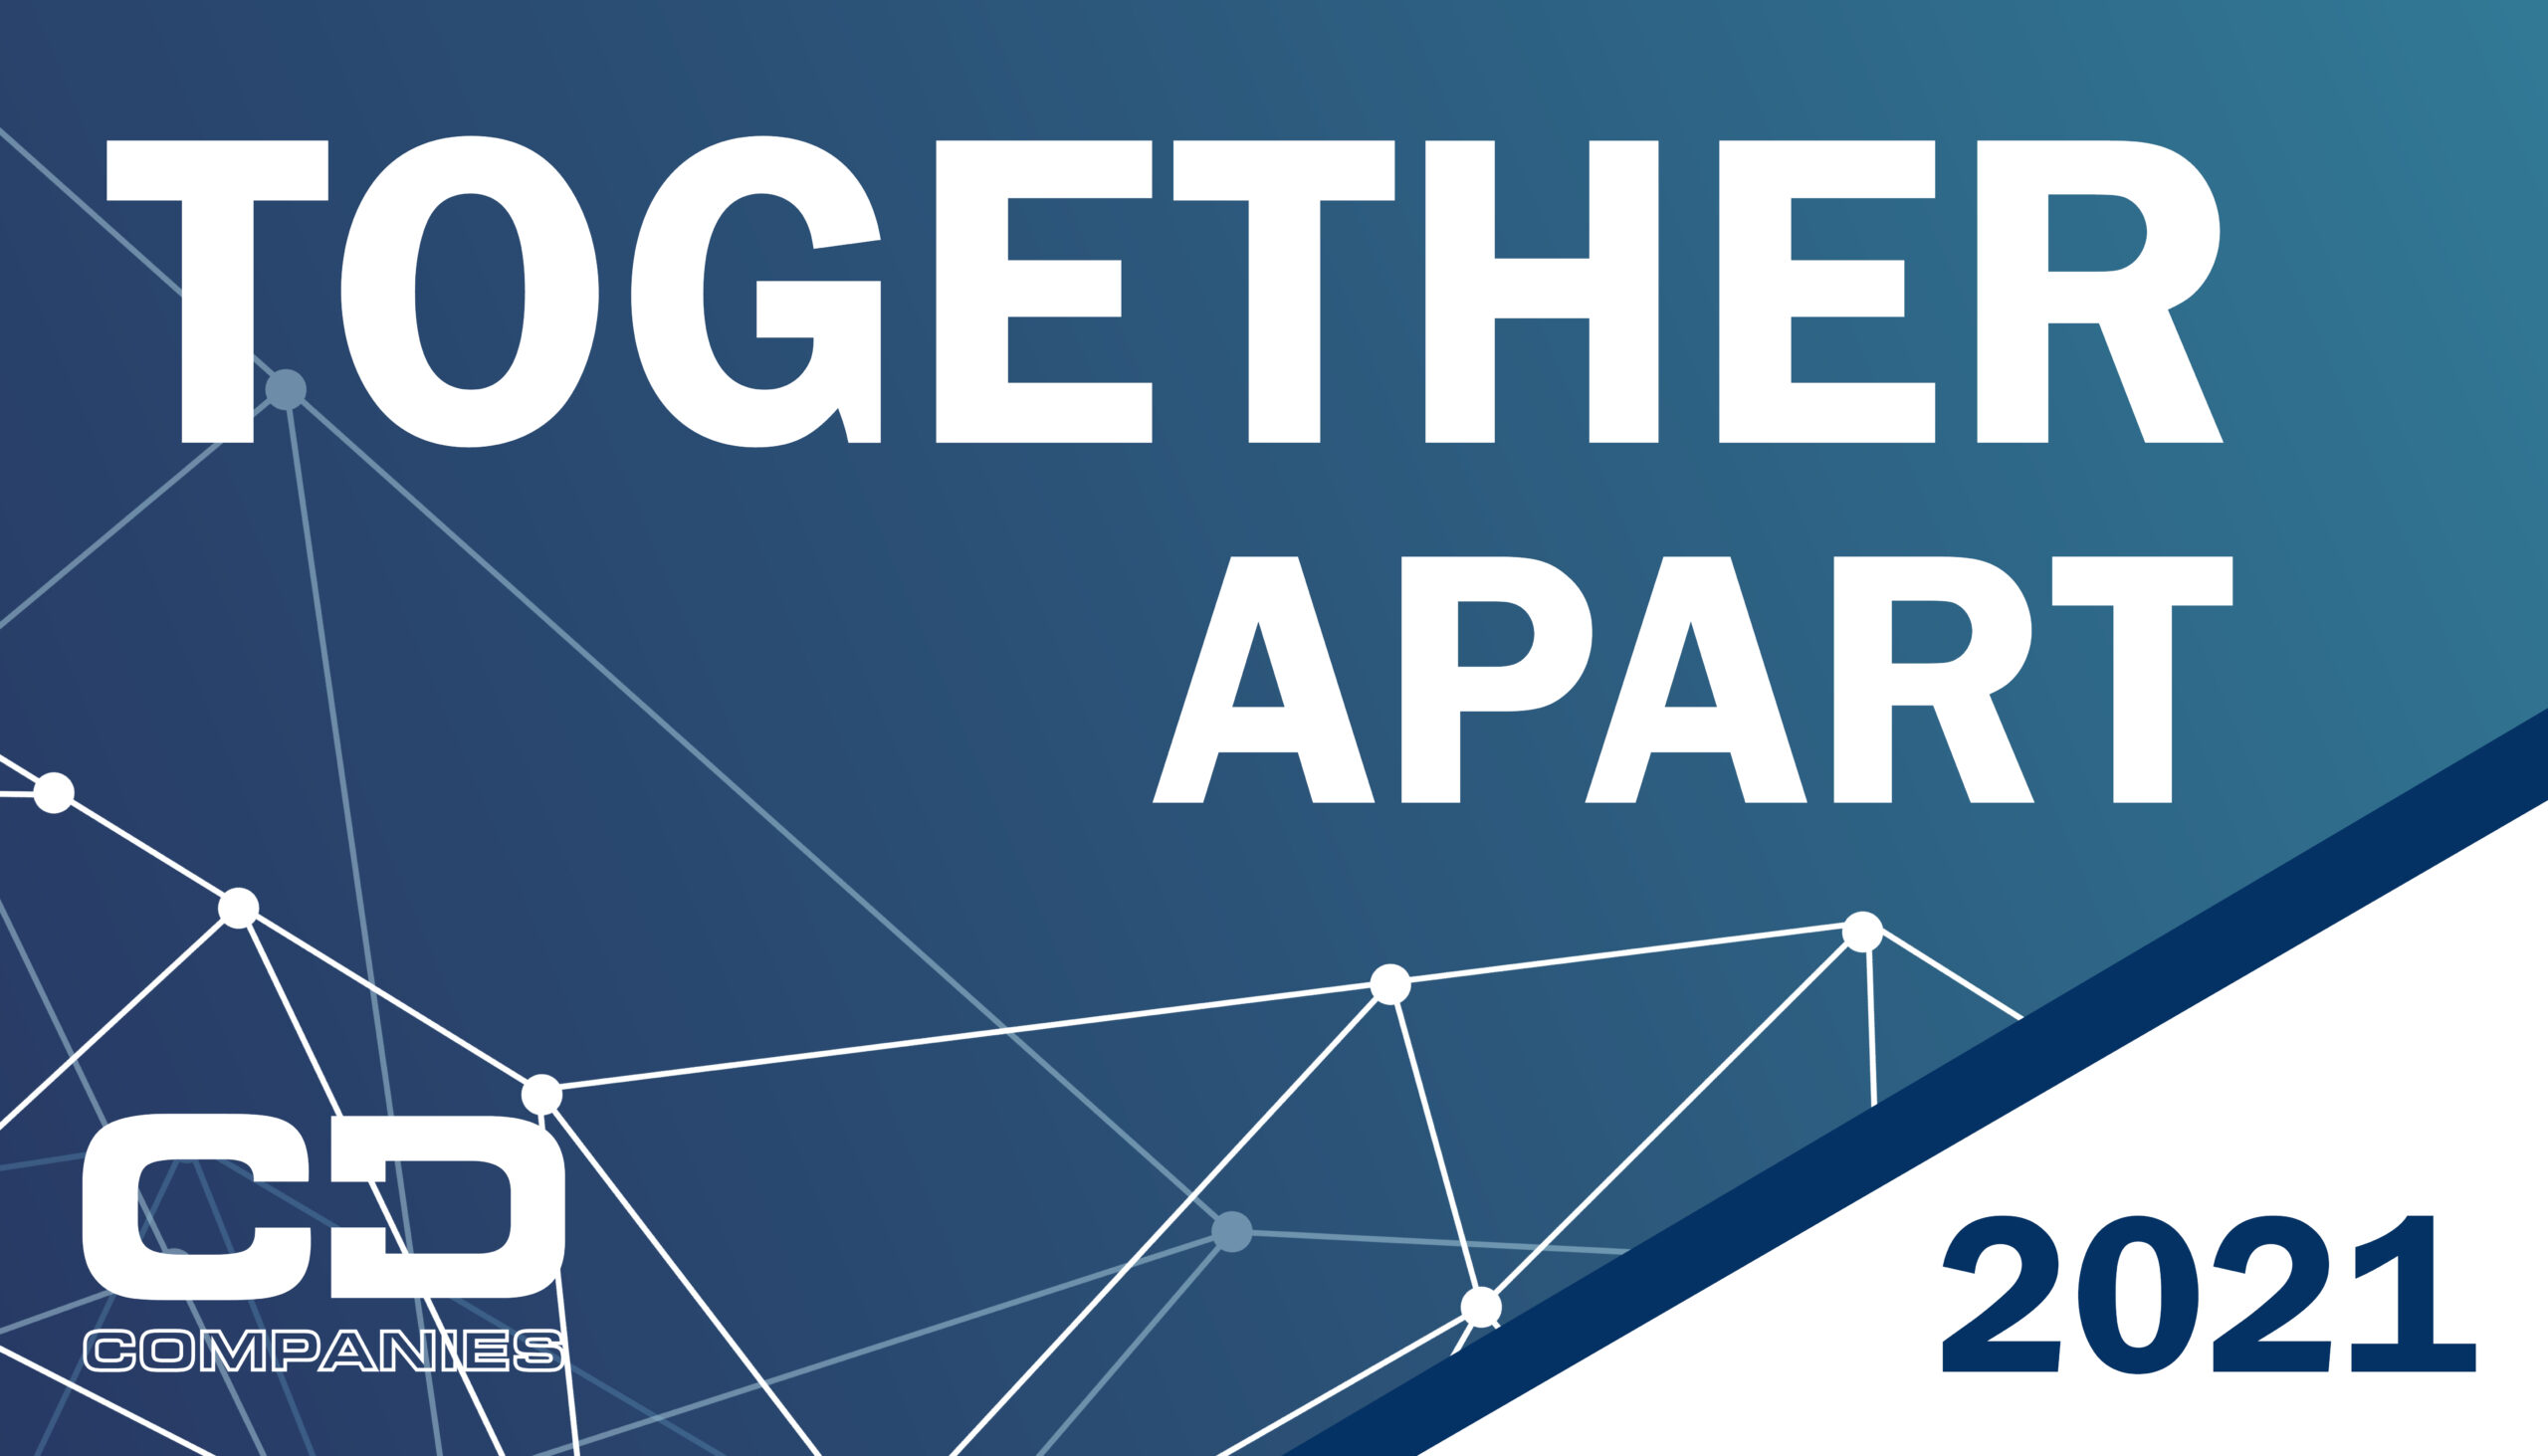 Together Apart 2021 Graphic